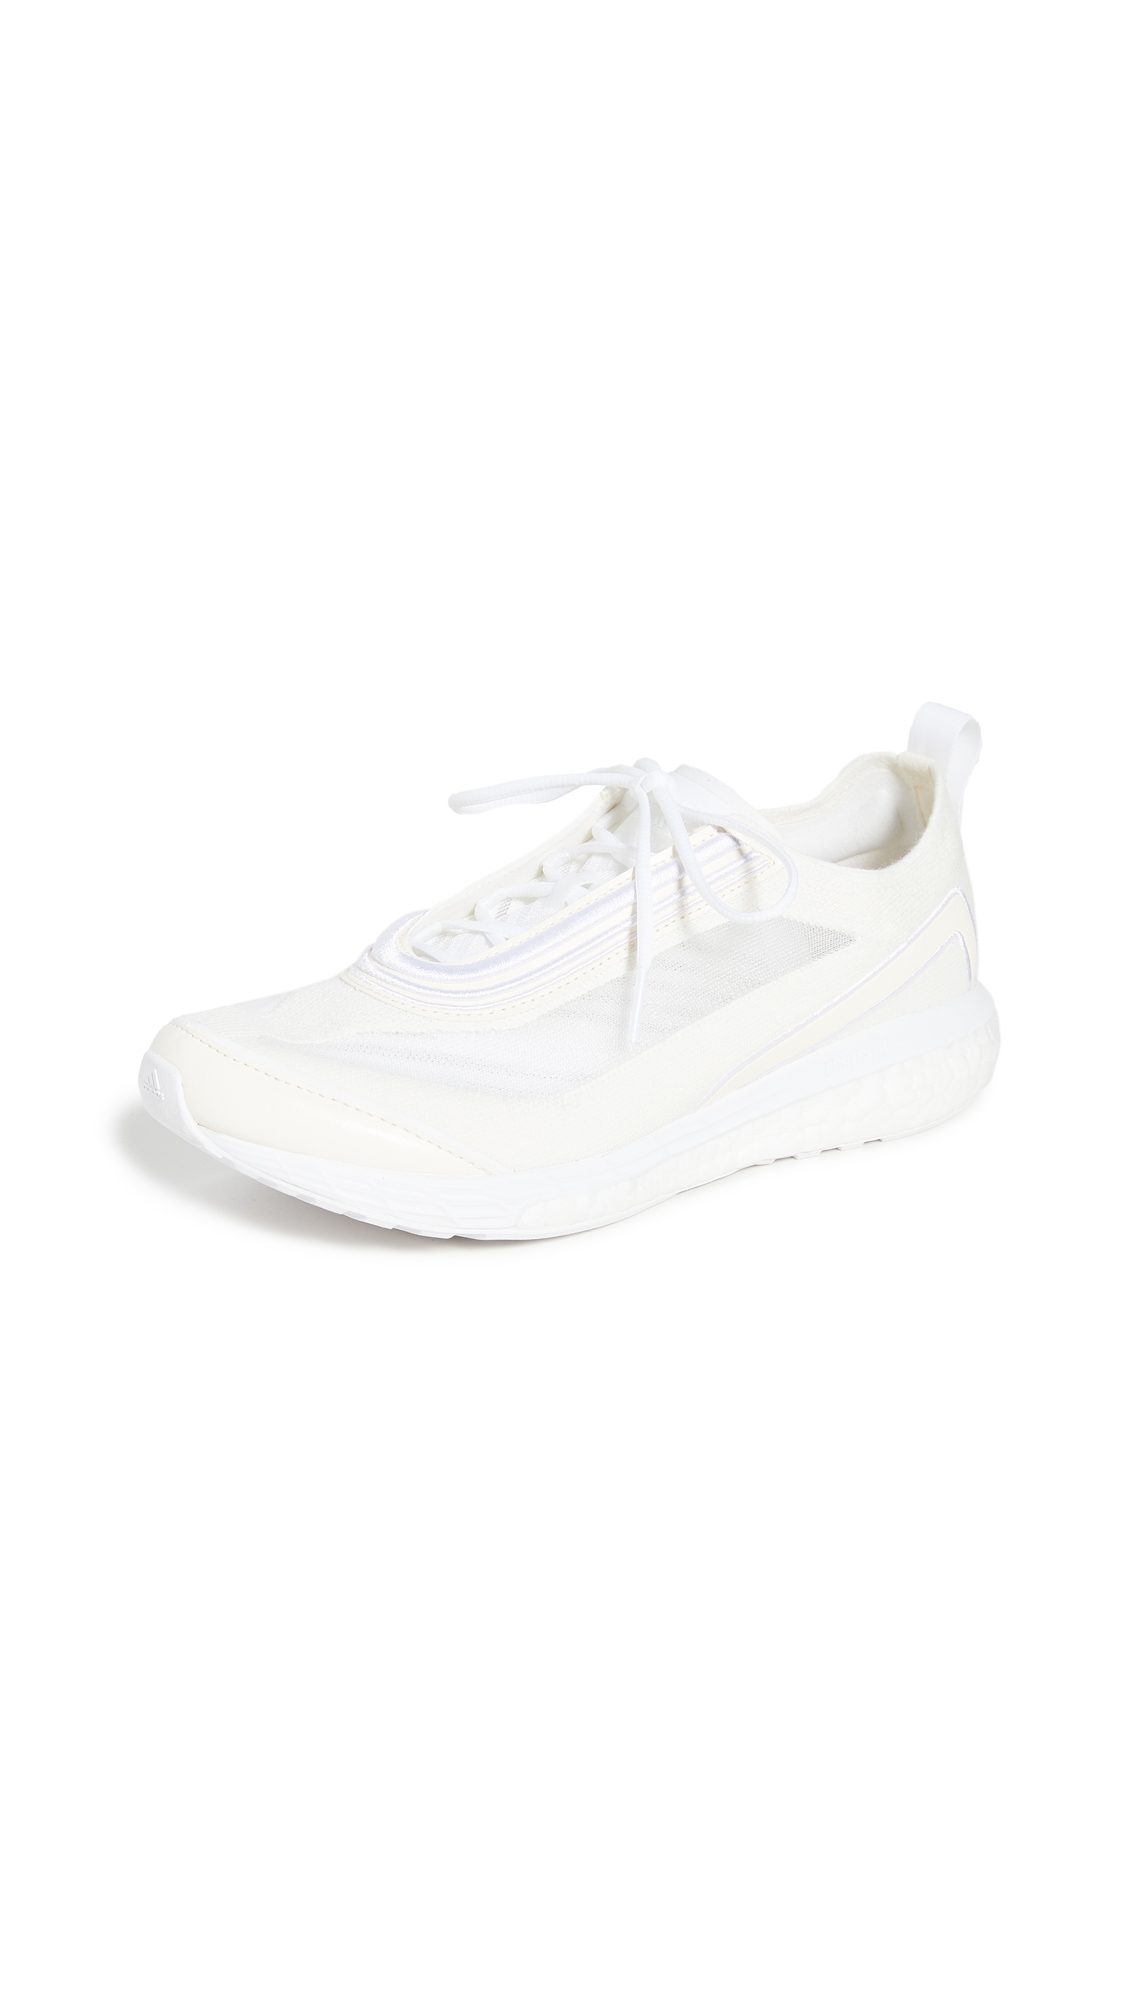 adidas by Stella McCartney Boston S. Sneakers - 50% Off Sale